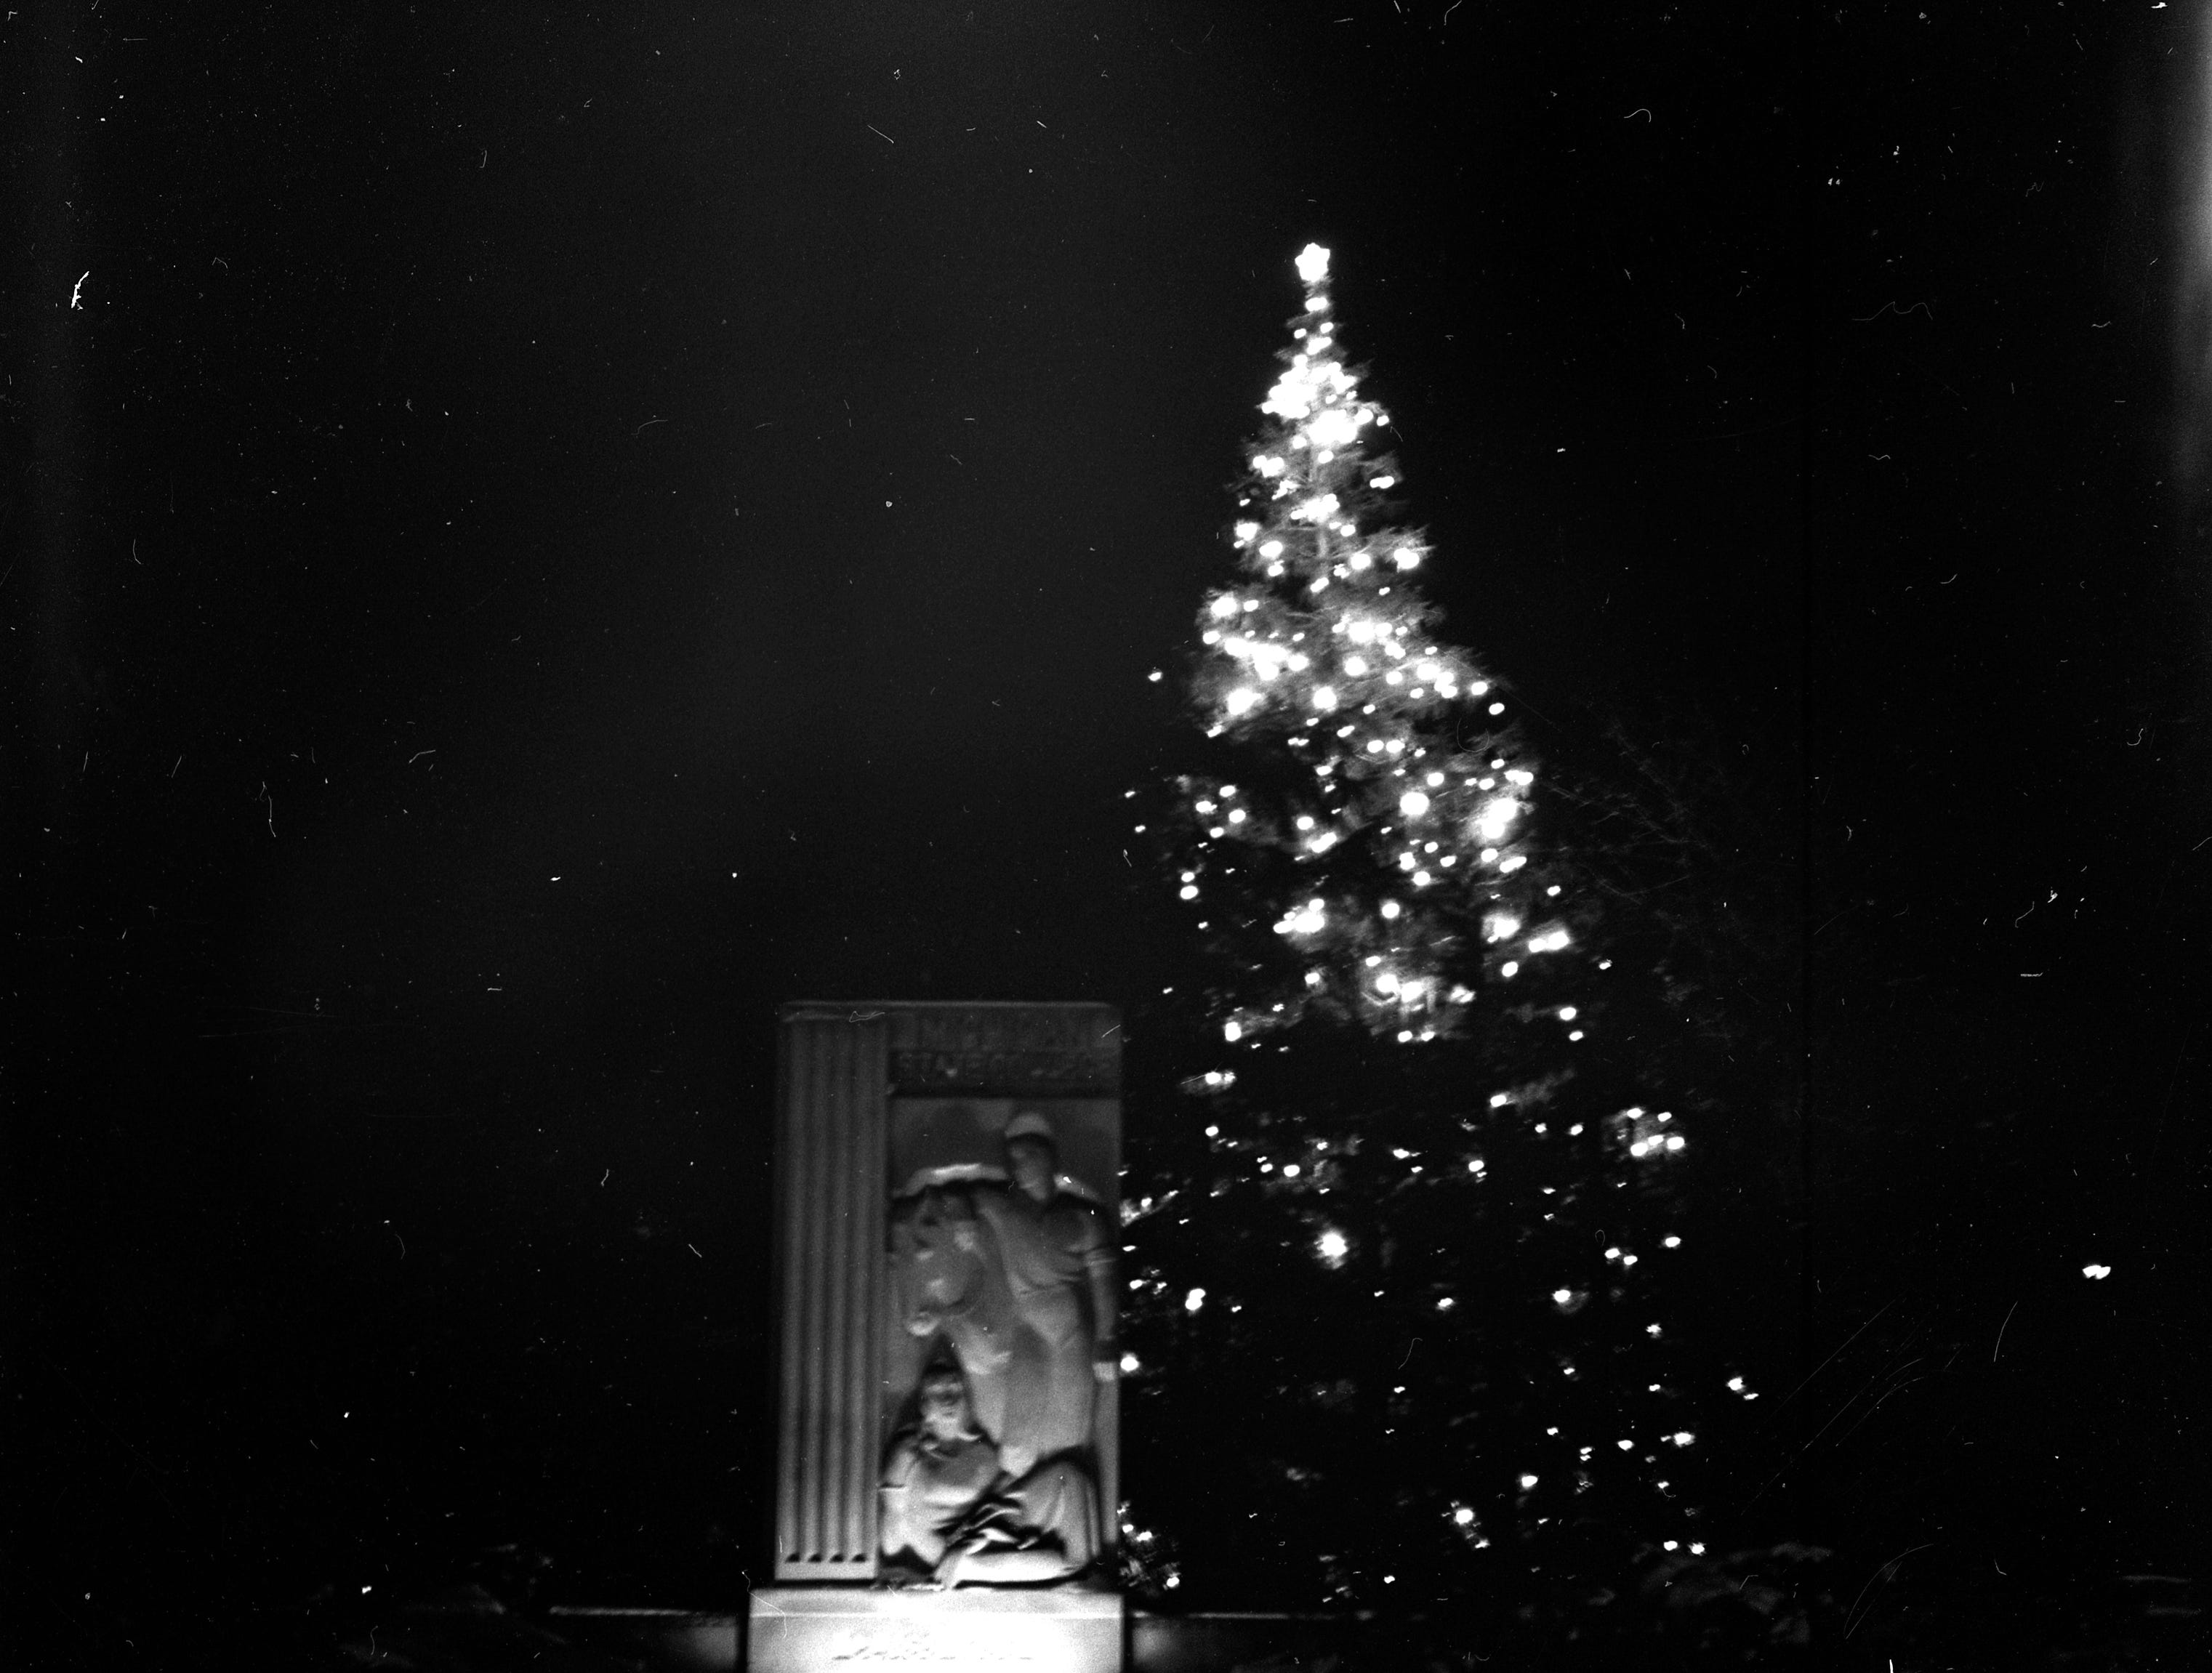 A lighted Christmas tree at night next to the Abbot Road entrance marker on MSU's Campus, in 1953.